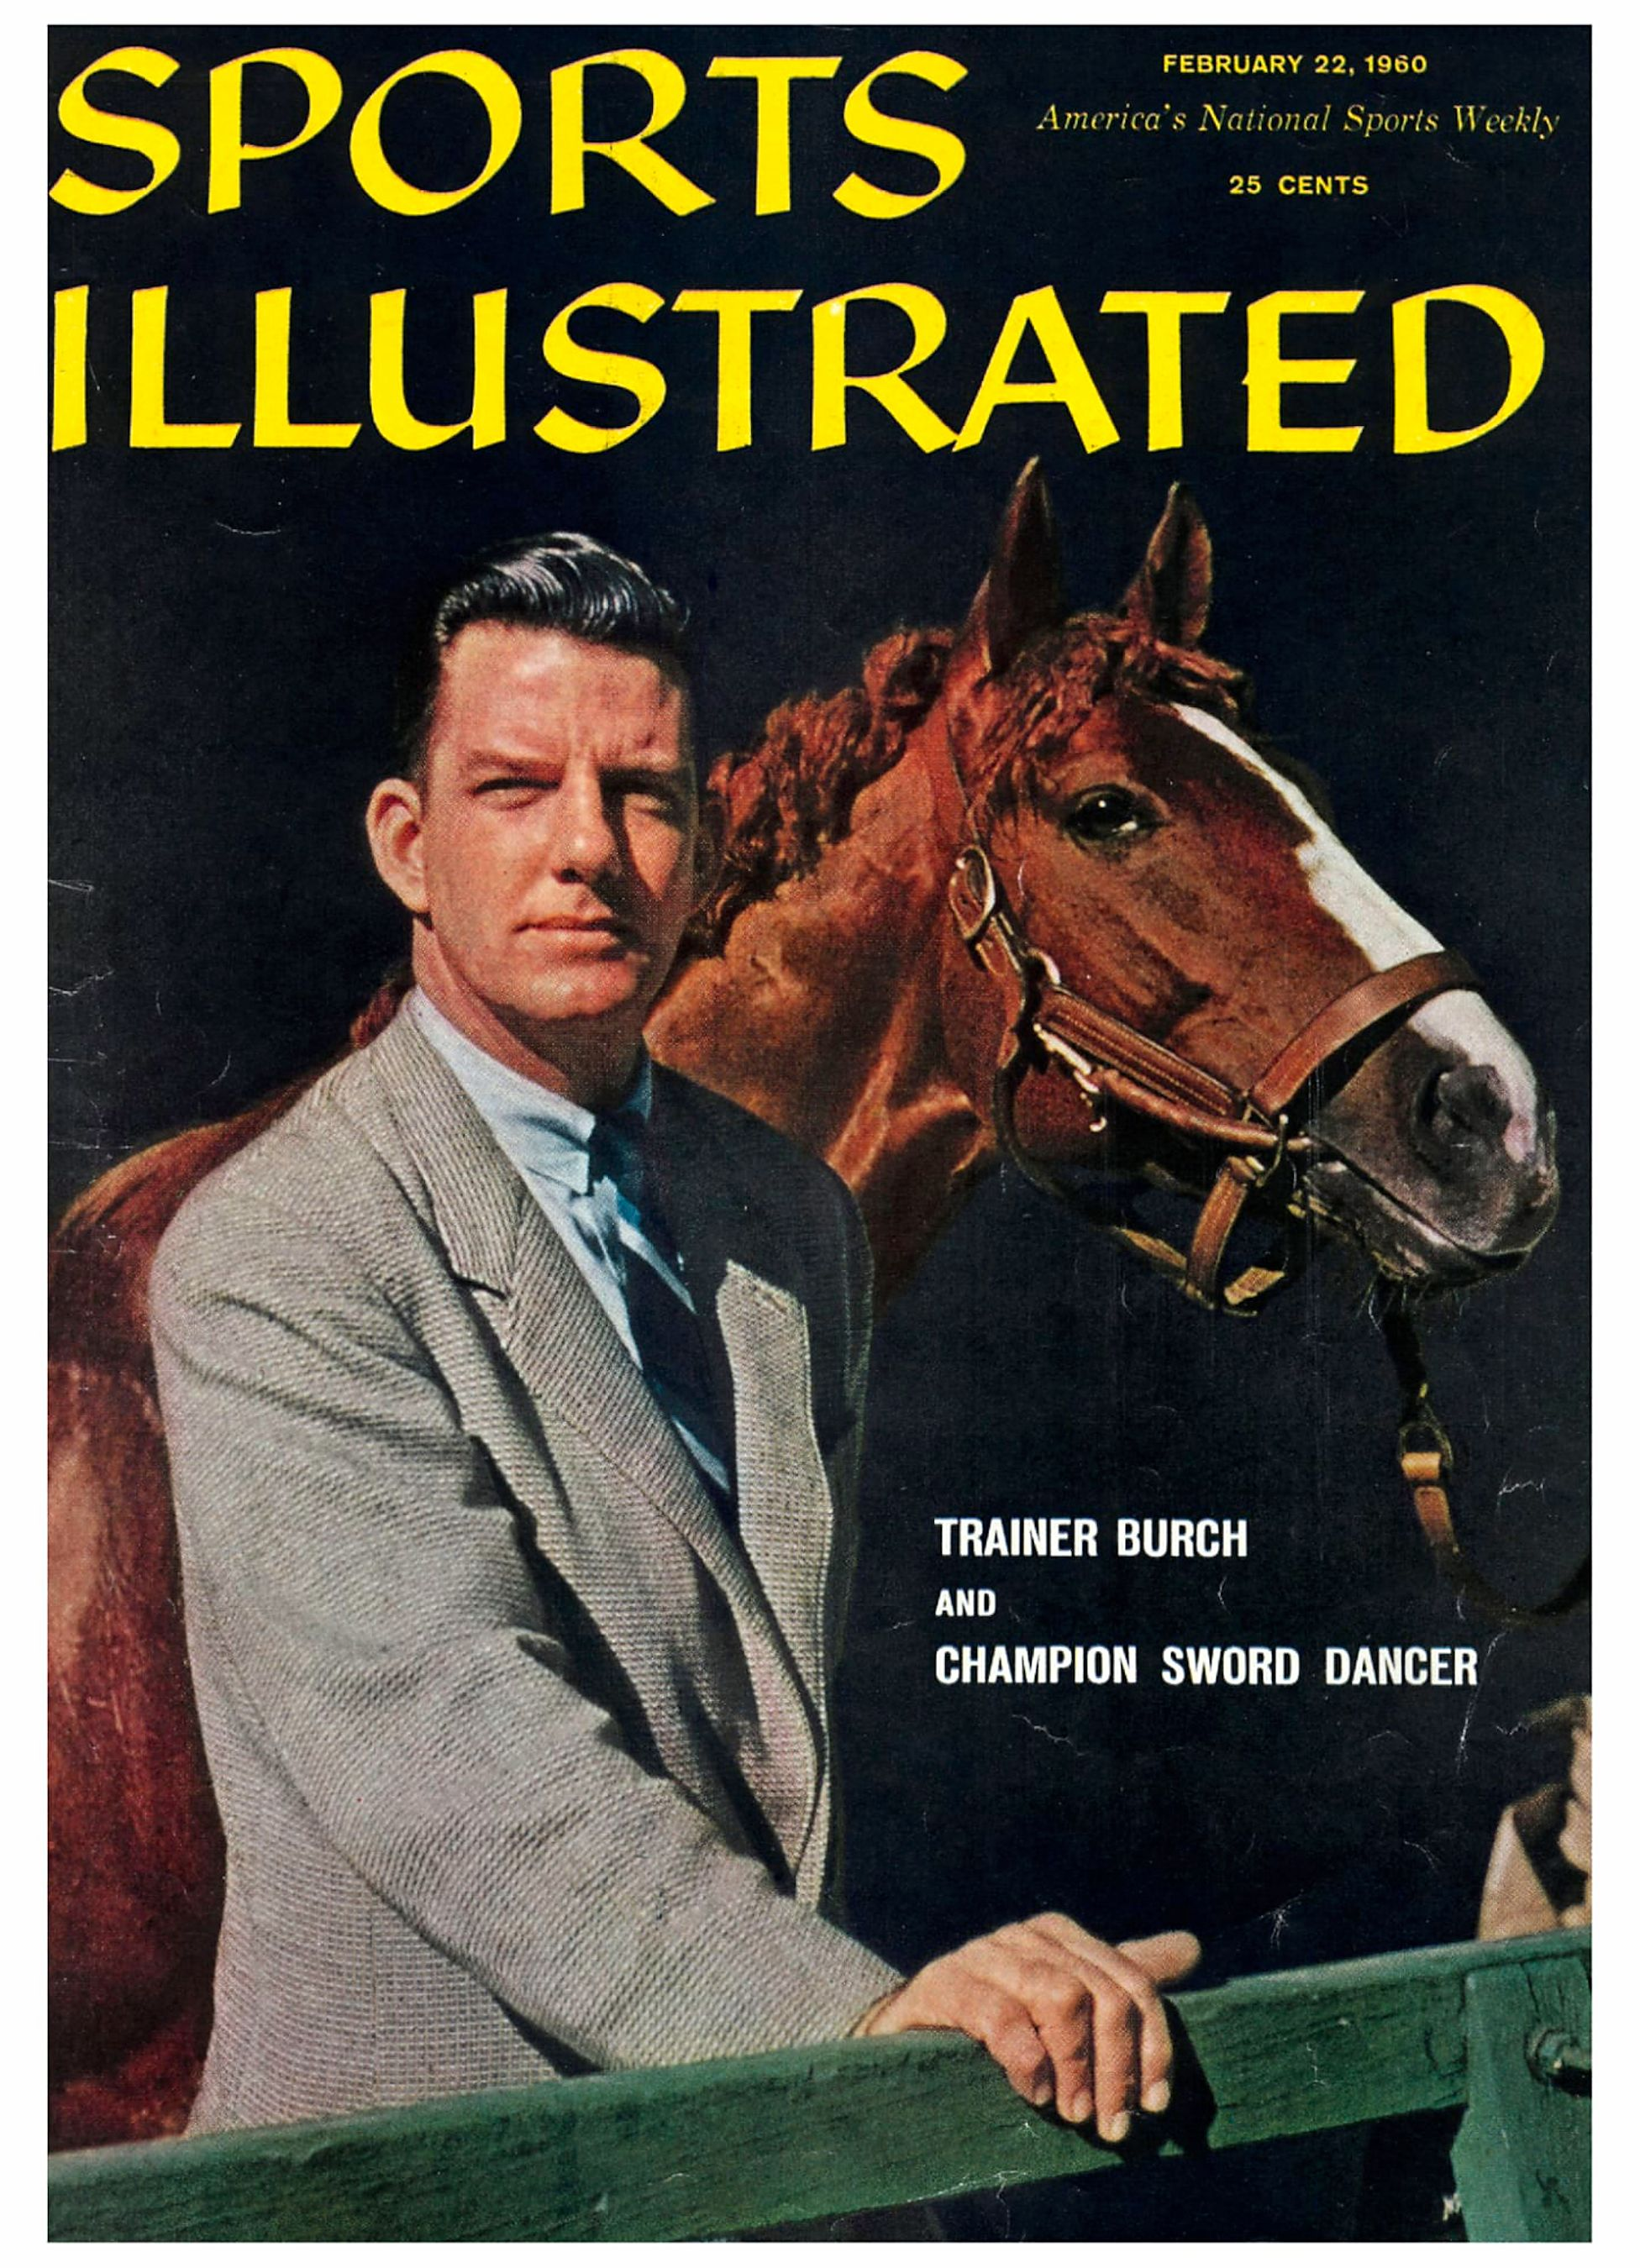 """Elliott Burch and Sword Dancer on the cover of """"Sports Illustrated"""" in 1960 (Sports Illustrated)"""